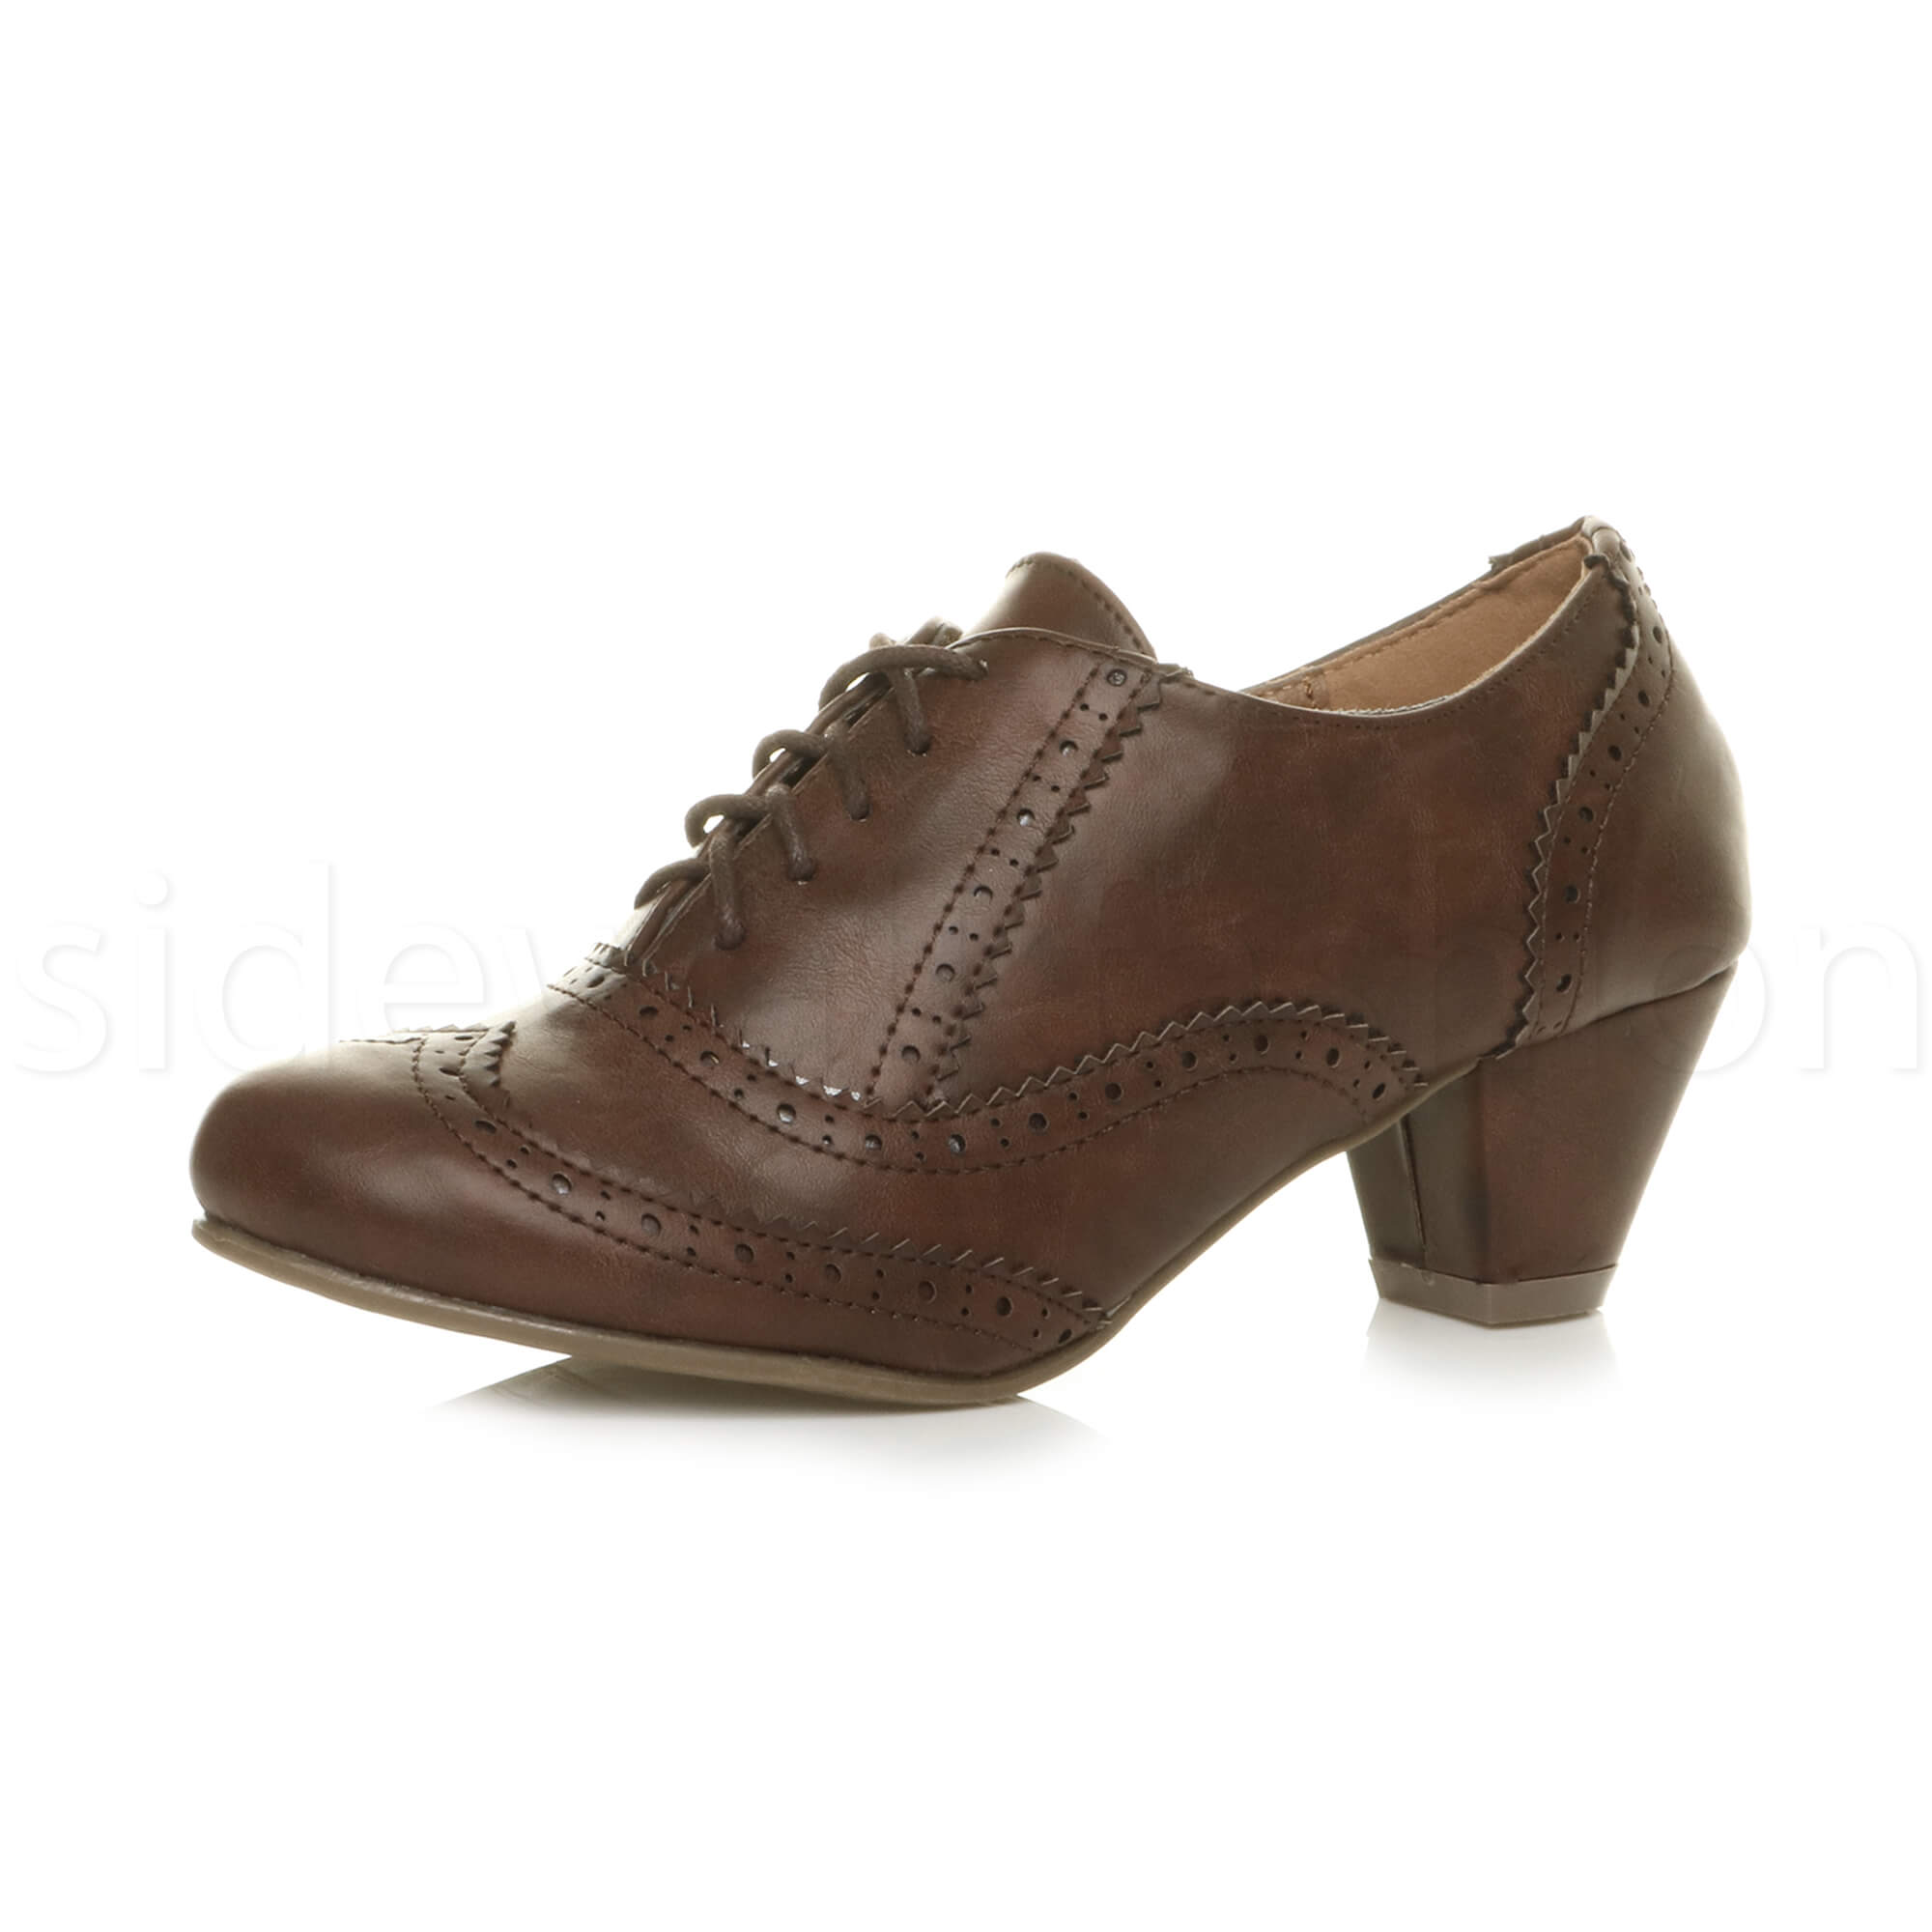 Shop Select Women's Shoes On Sale At neidagrosk0dwju.ga Enjoy Free Shipping & Returns On All Orders.